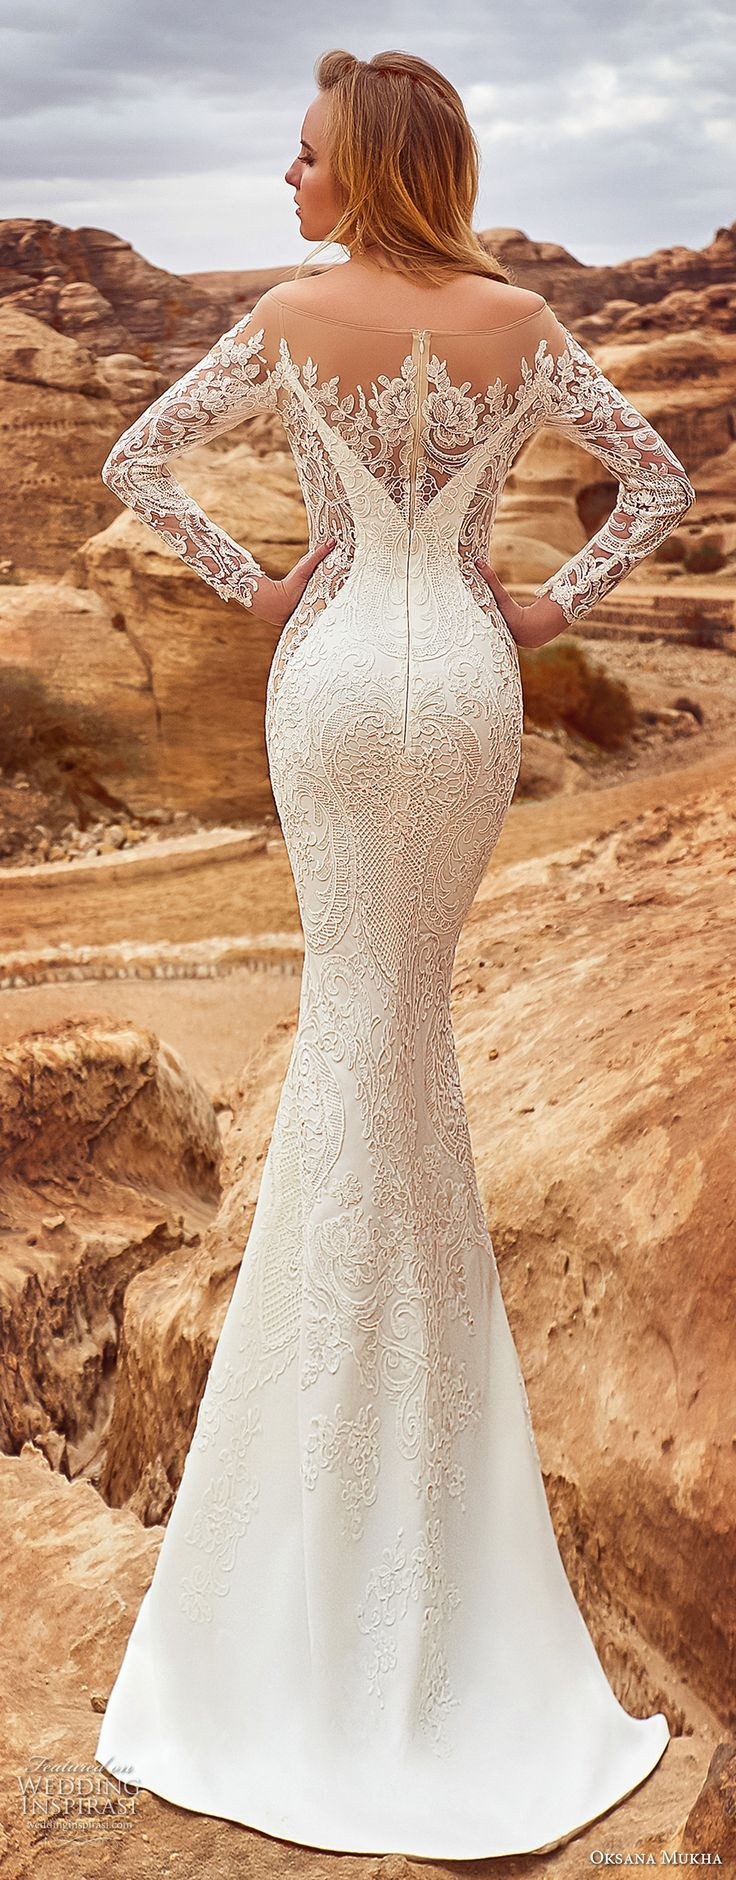 oksana mukha 2018 bridal long sleeves off the shoulder sweetheart neckline full embellishment elegant glamorous fit and flare wedding dress sheer lace back sweep train (armadea) bv -- Oksana Mukha 2018 Wedding Dresses